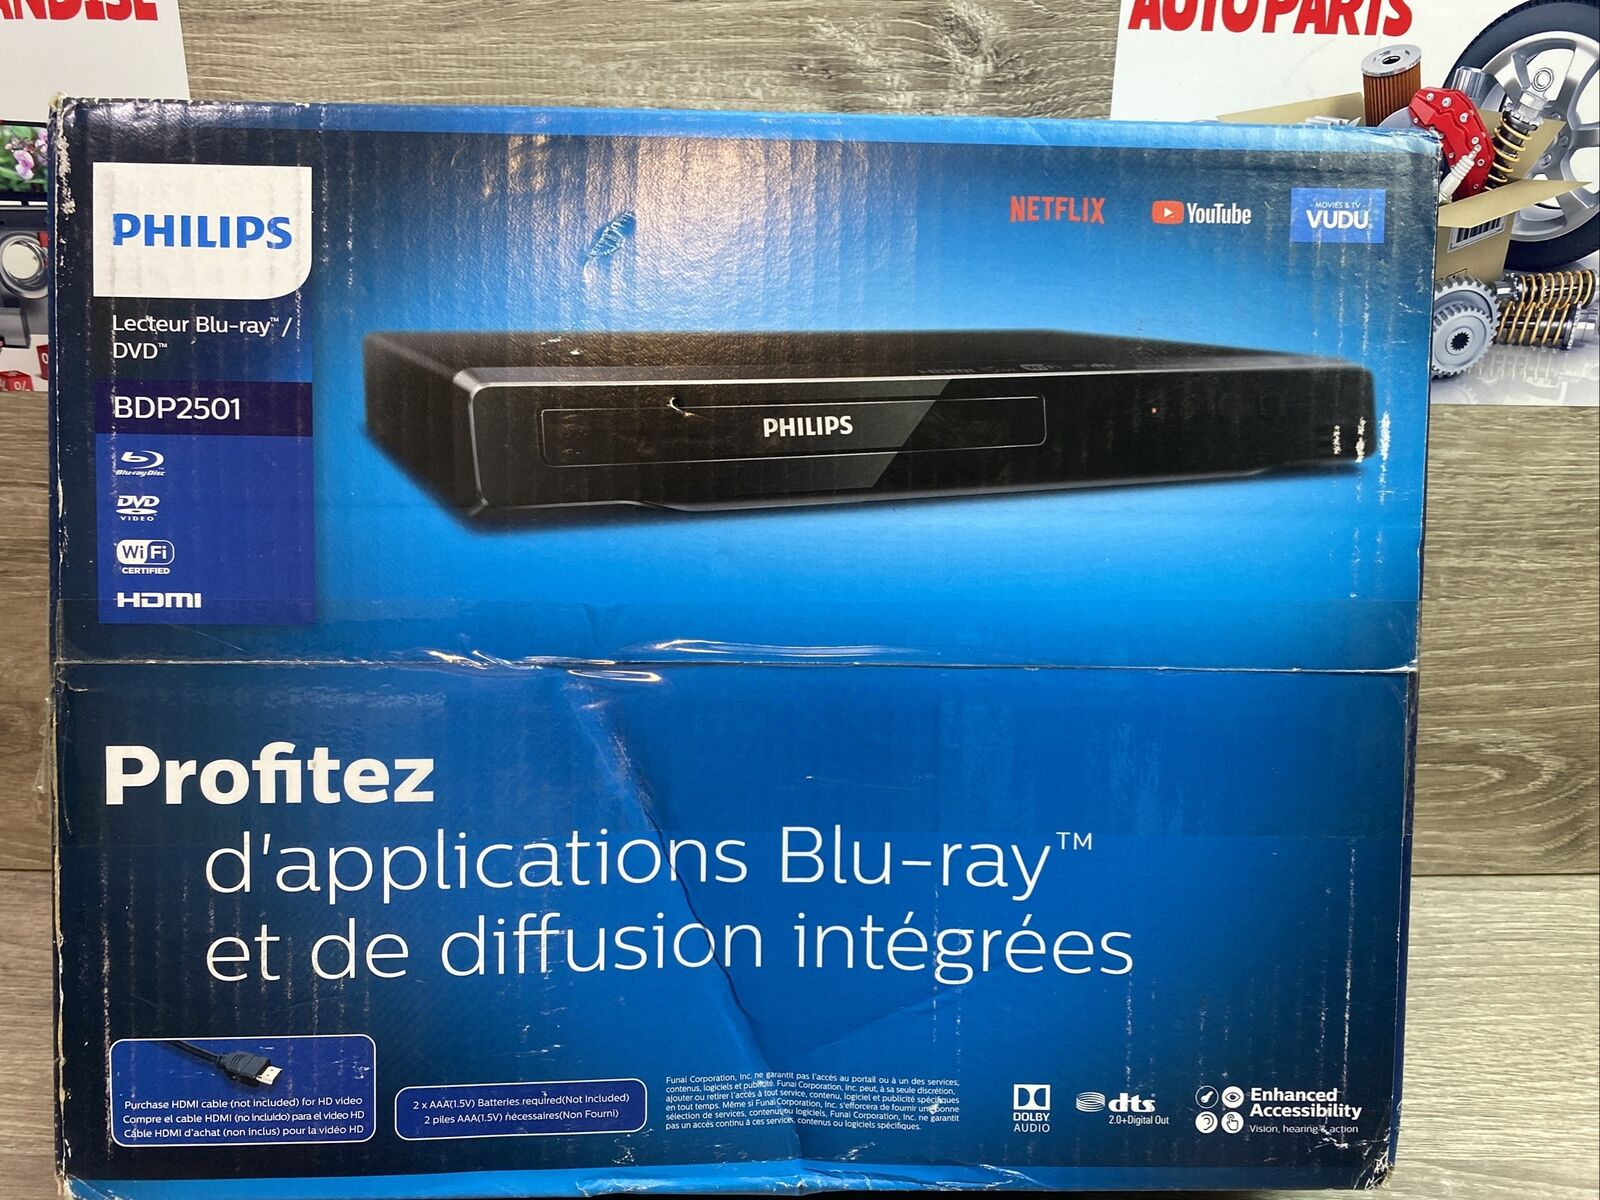 ✅Philips BDP2501/F7 Blu-ray / DVD Player WiFi Dolby Audio Streaming Apps Netflix apps audio dolby dvd netflix player streaming wifi